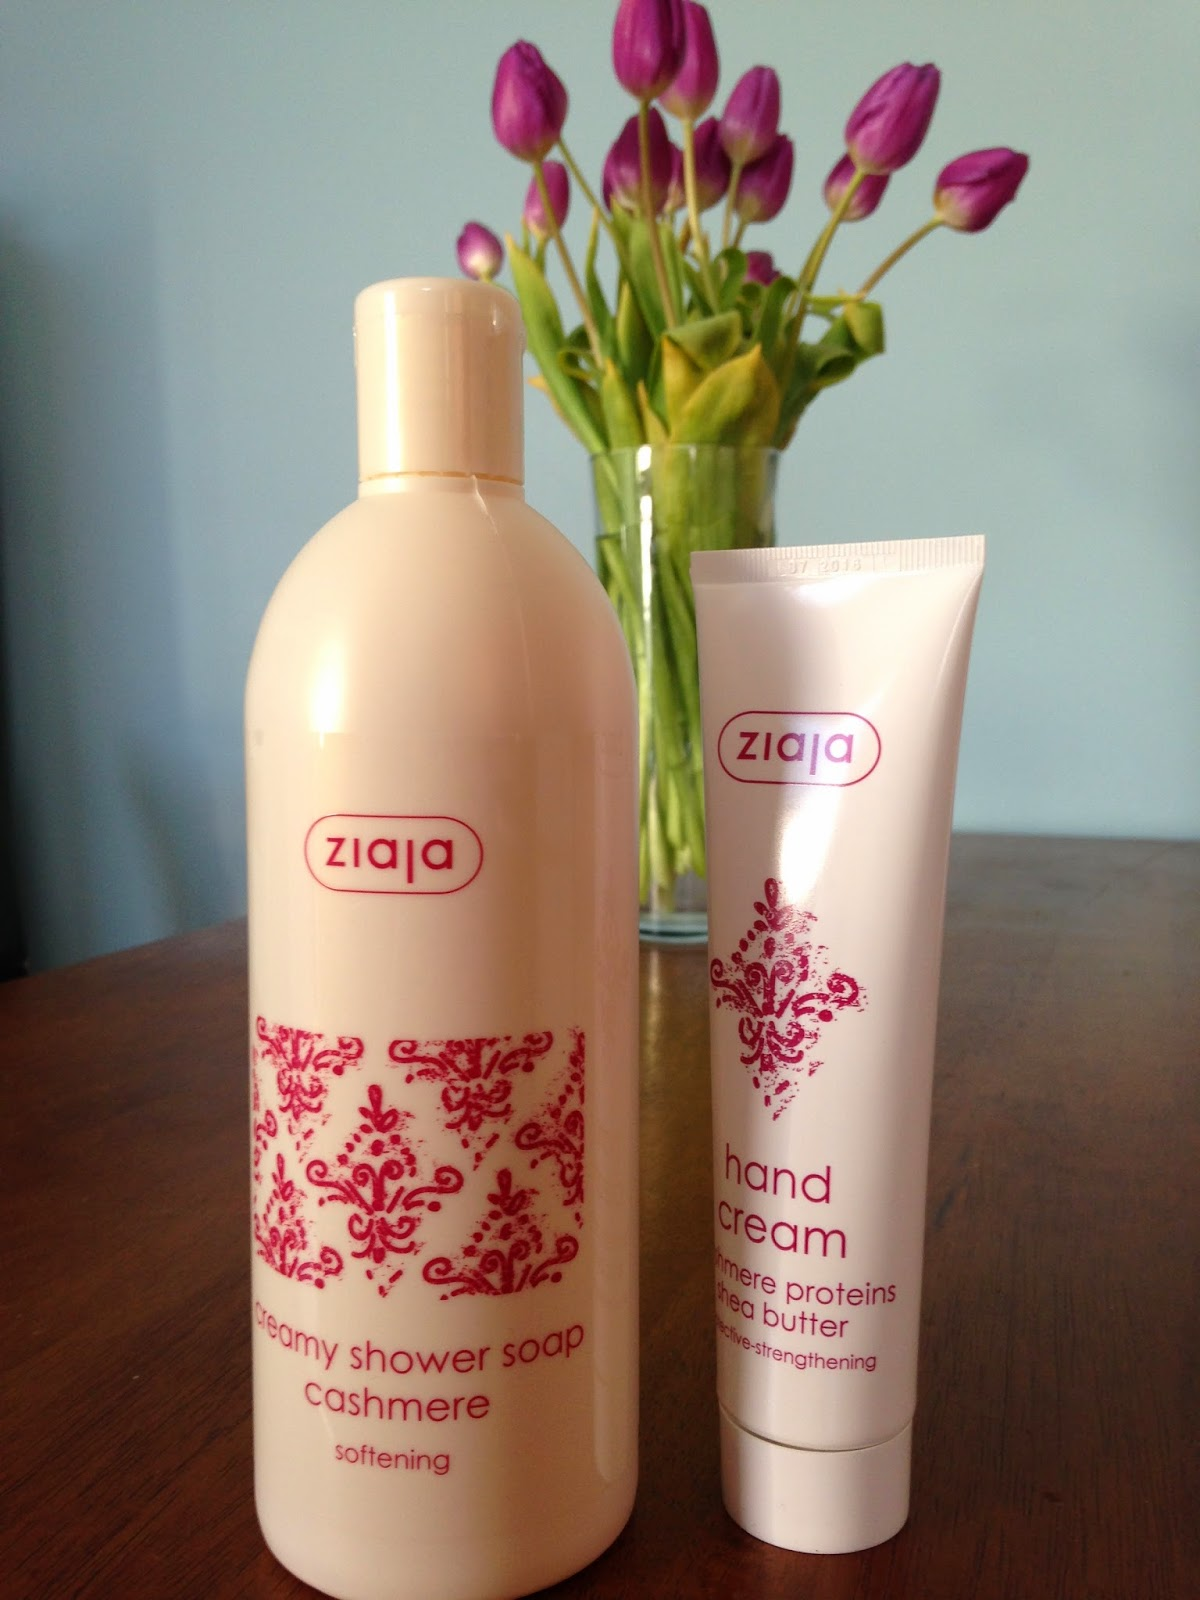 Ziaja Cashmere Hand Cream & Creamy Shower Soap Review